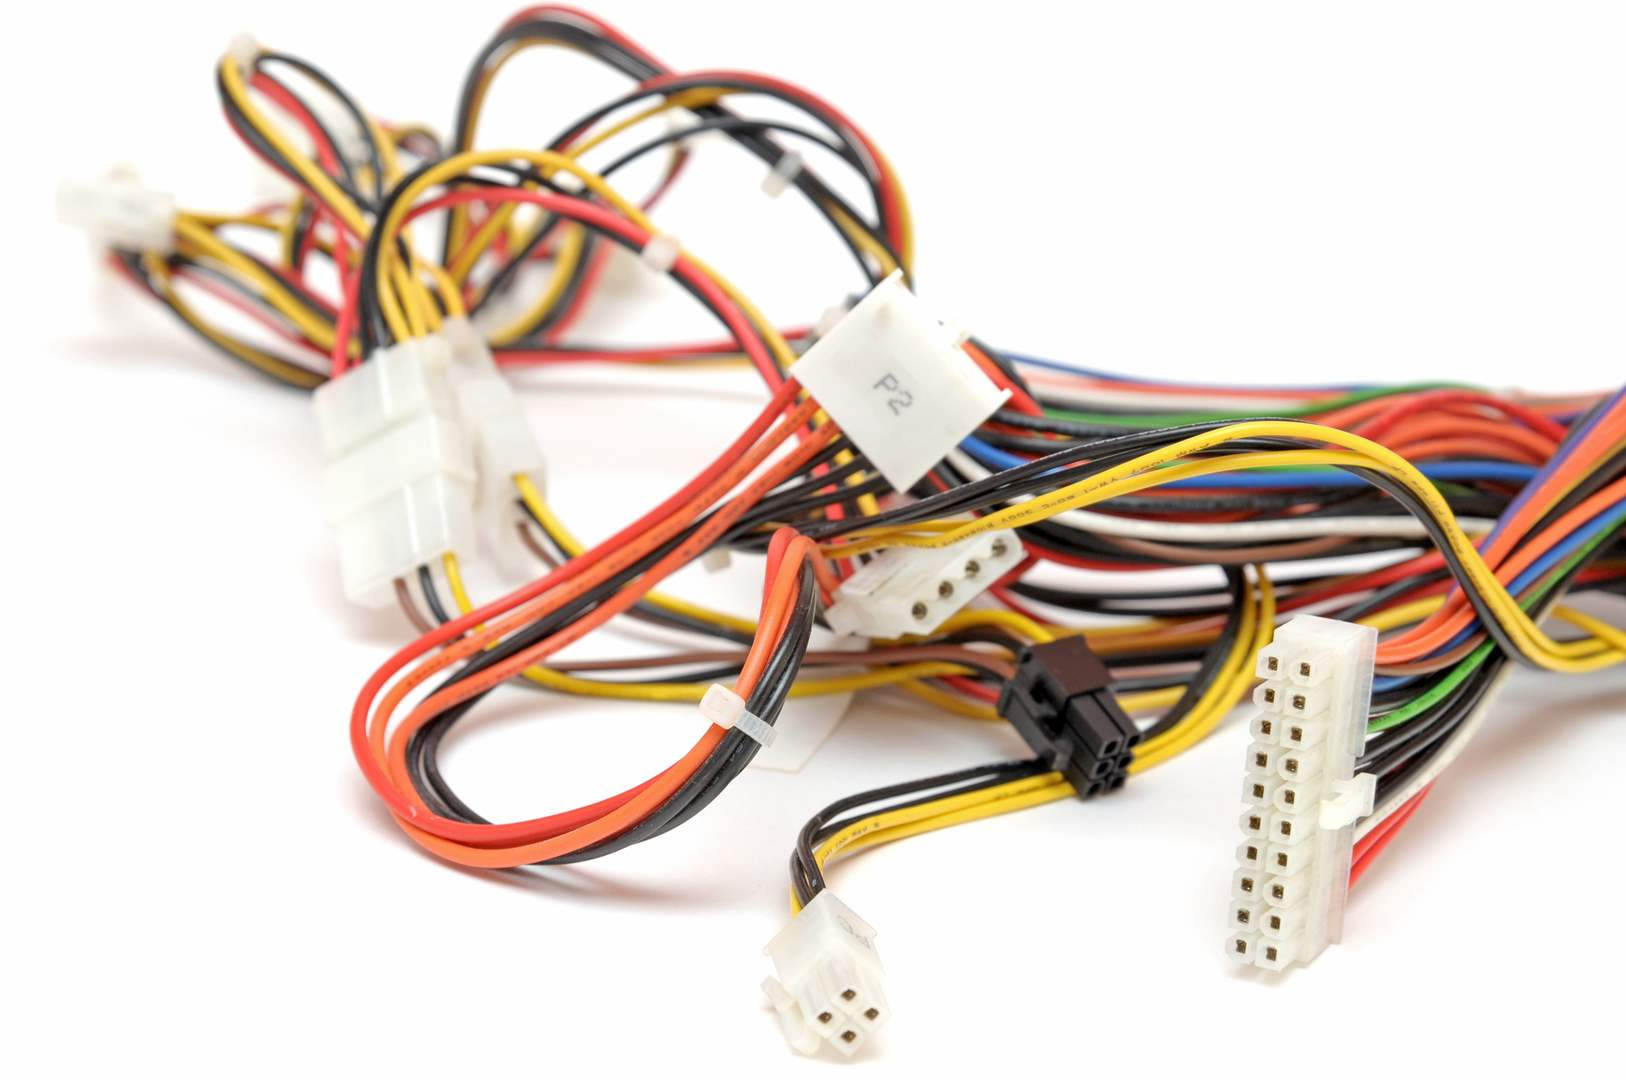 multicolor wires and cable connectors